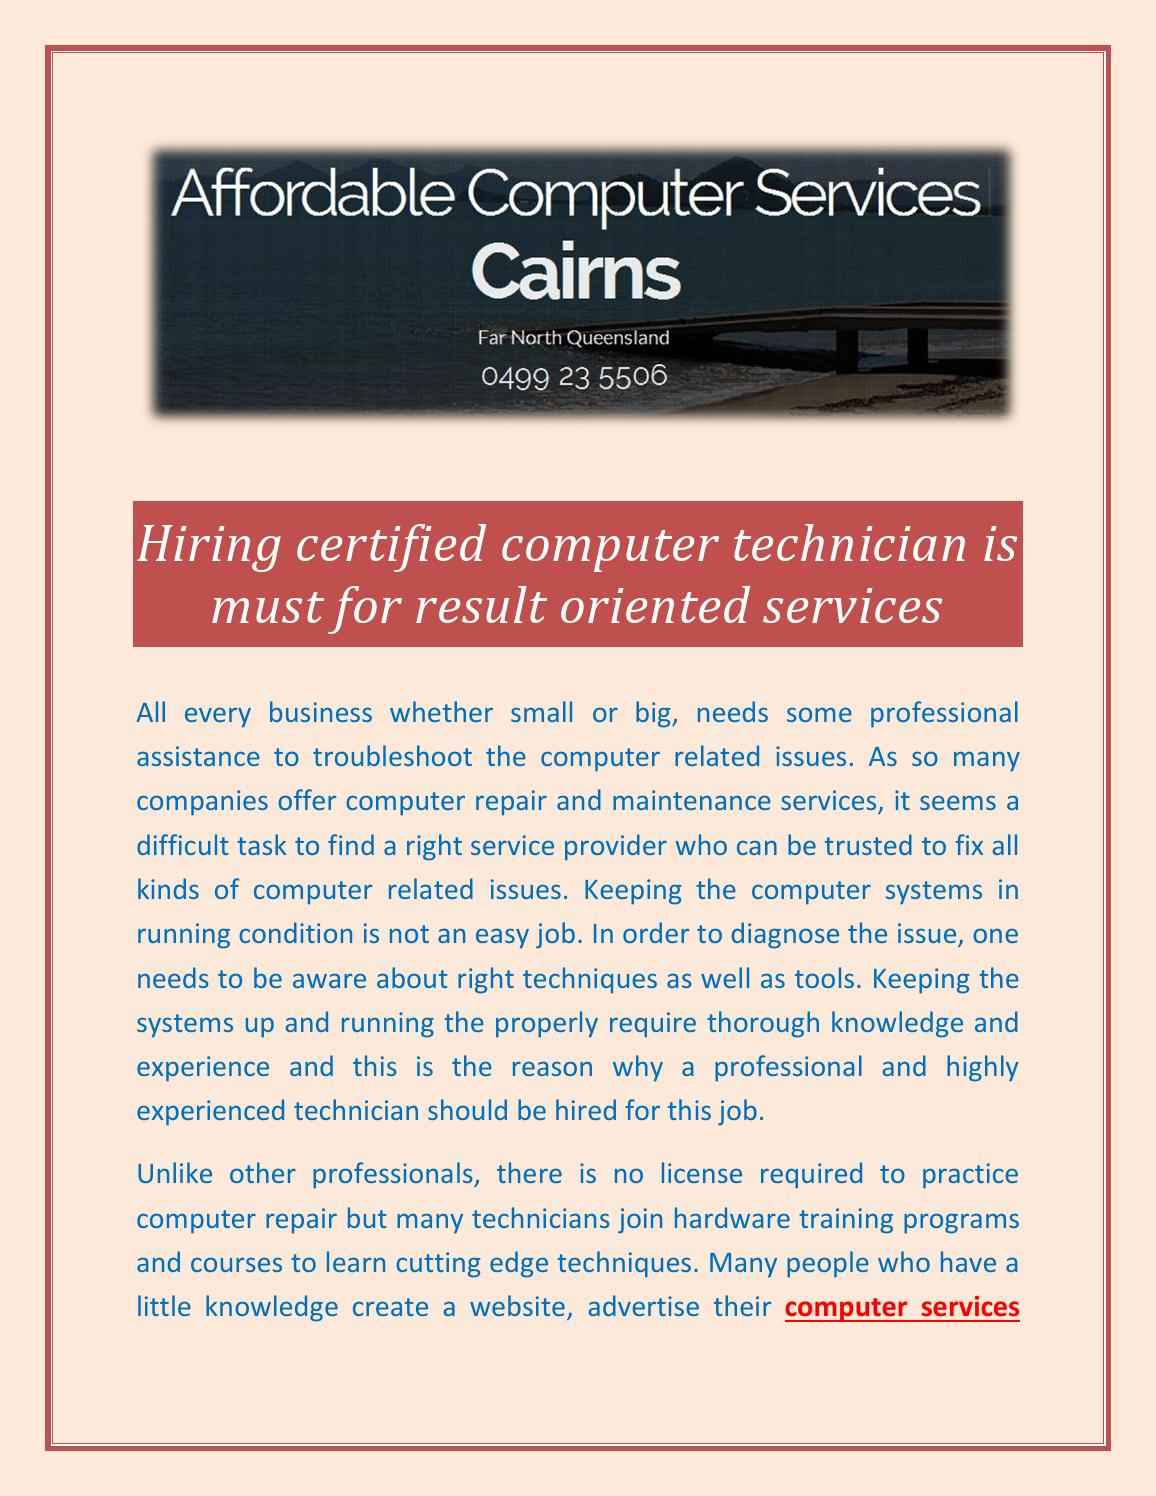 Hiring Certified Computer Technician Is Must For Result Oriented